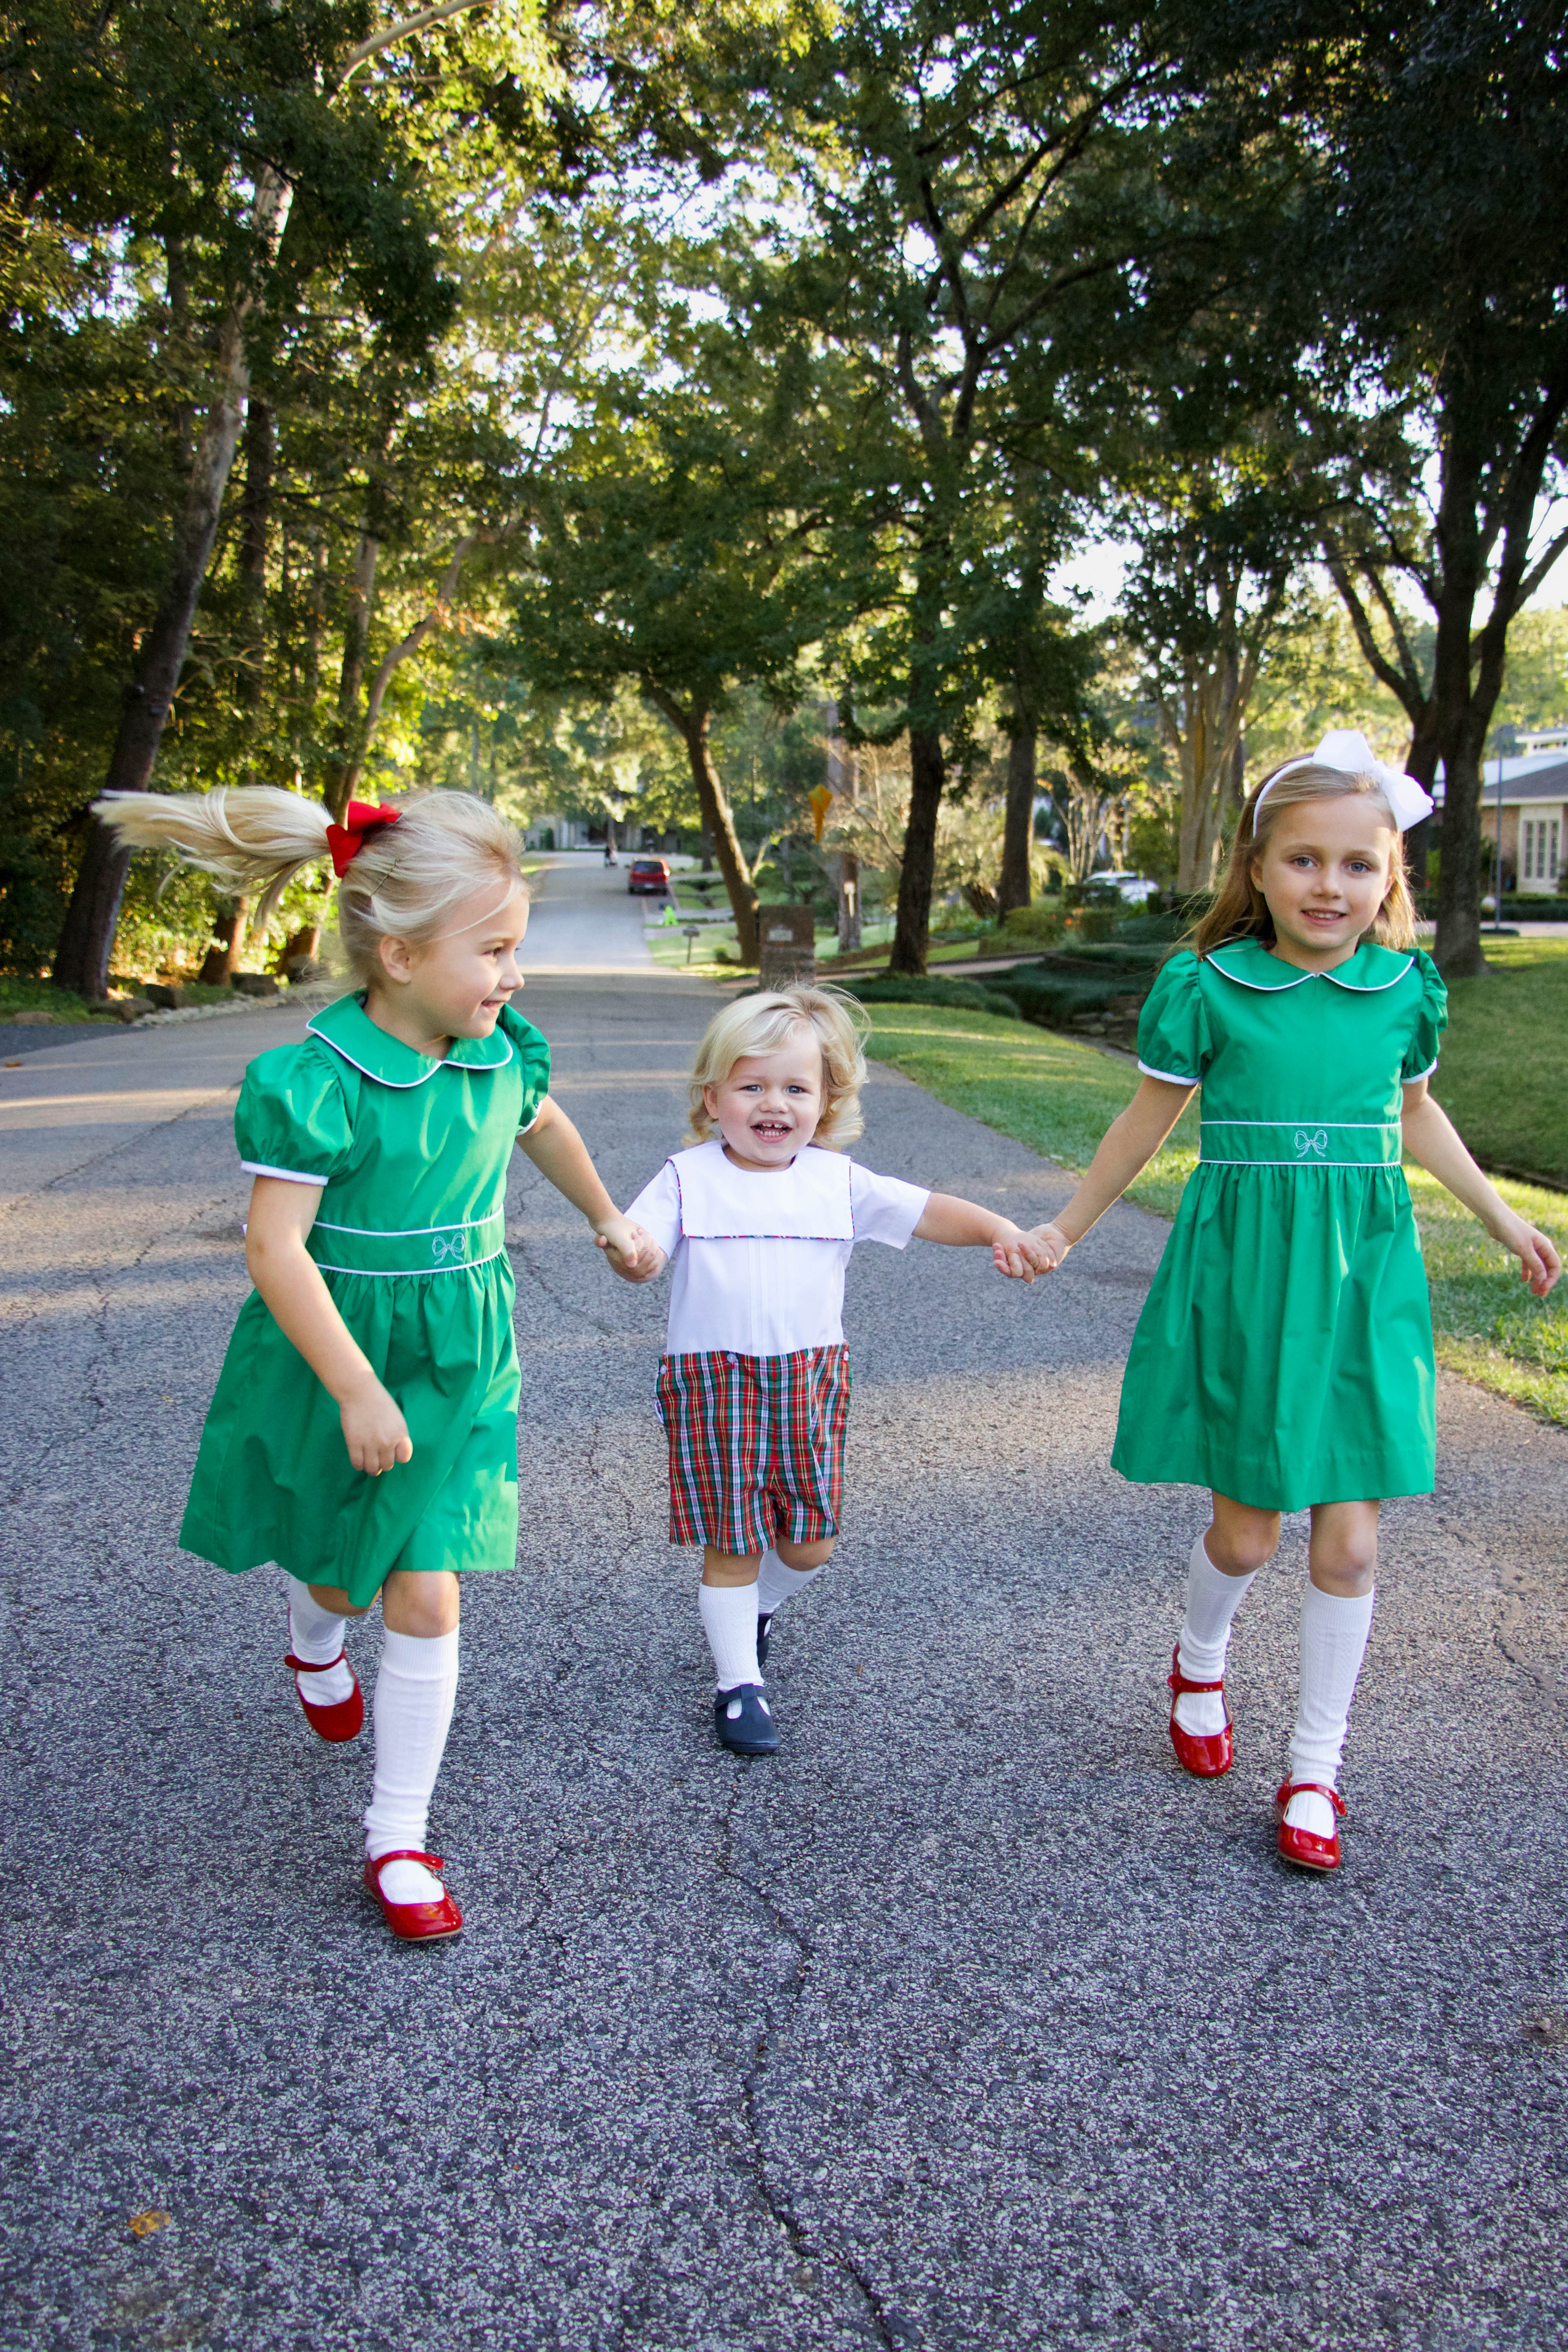 Beaufort Bonnet kids clothing for Christmas - girls and boys - formal dresses and onesie